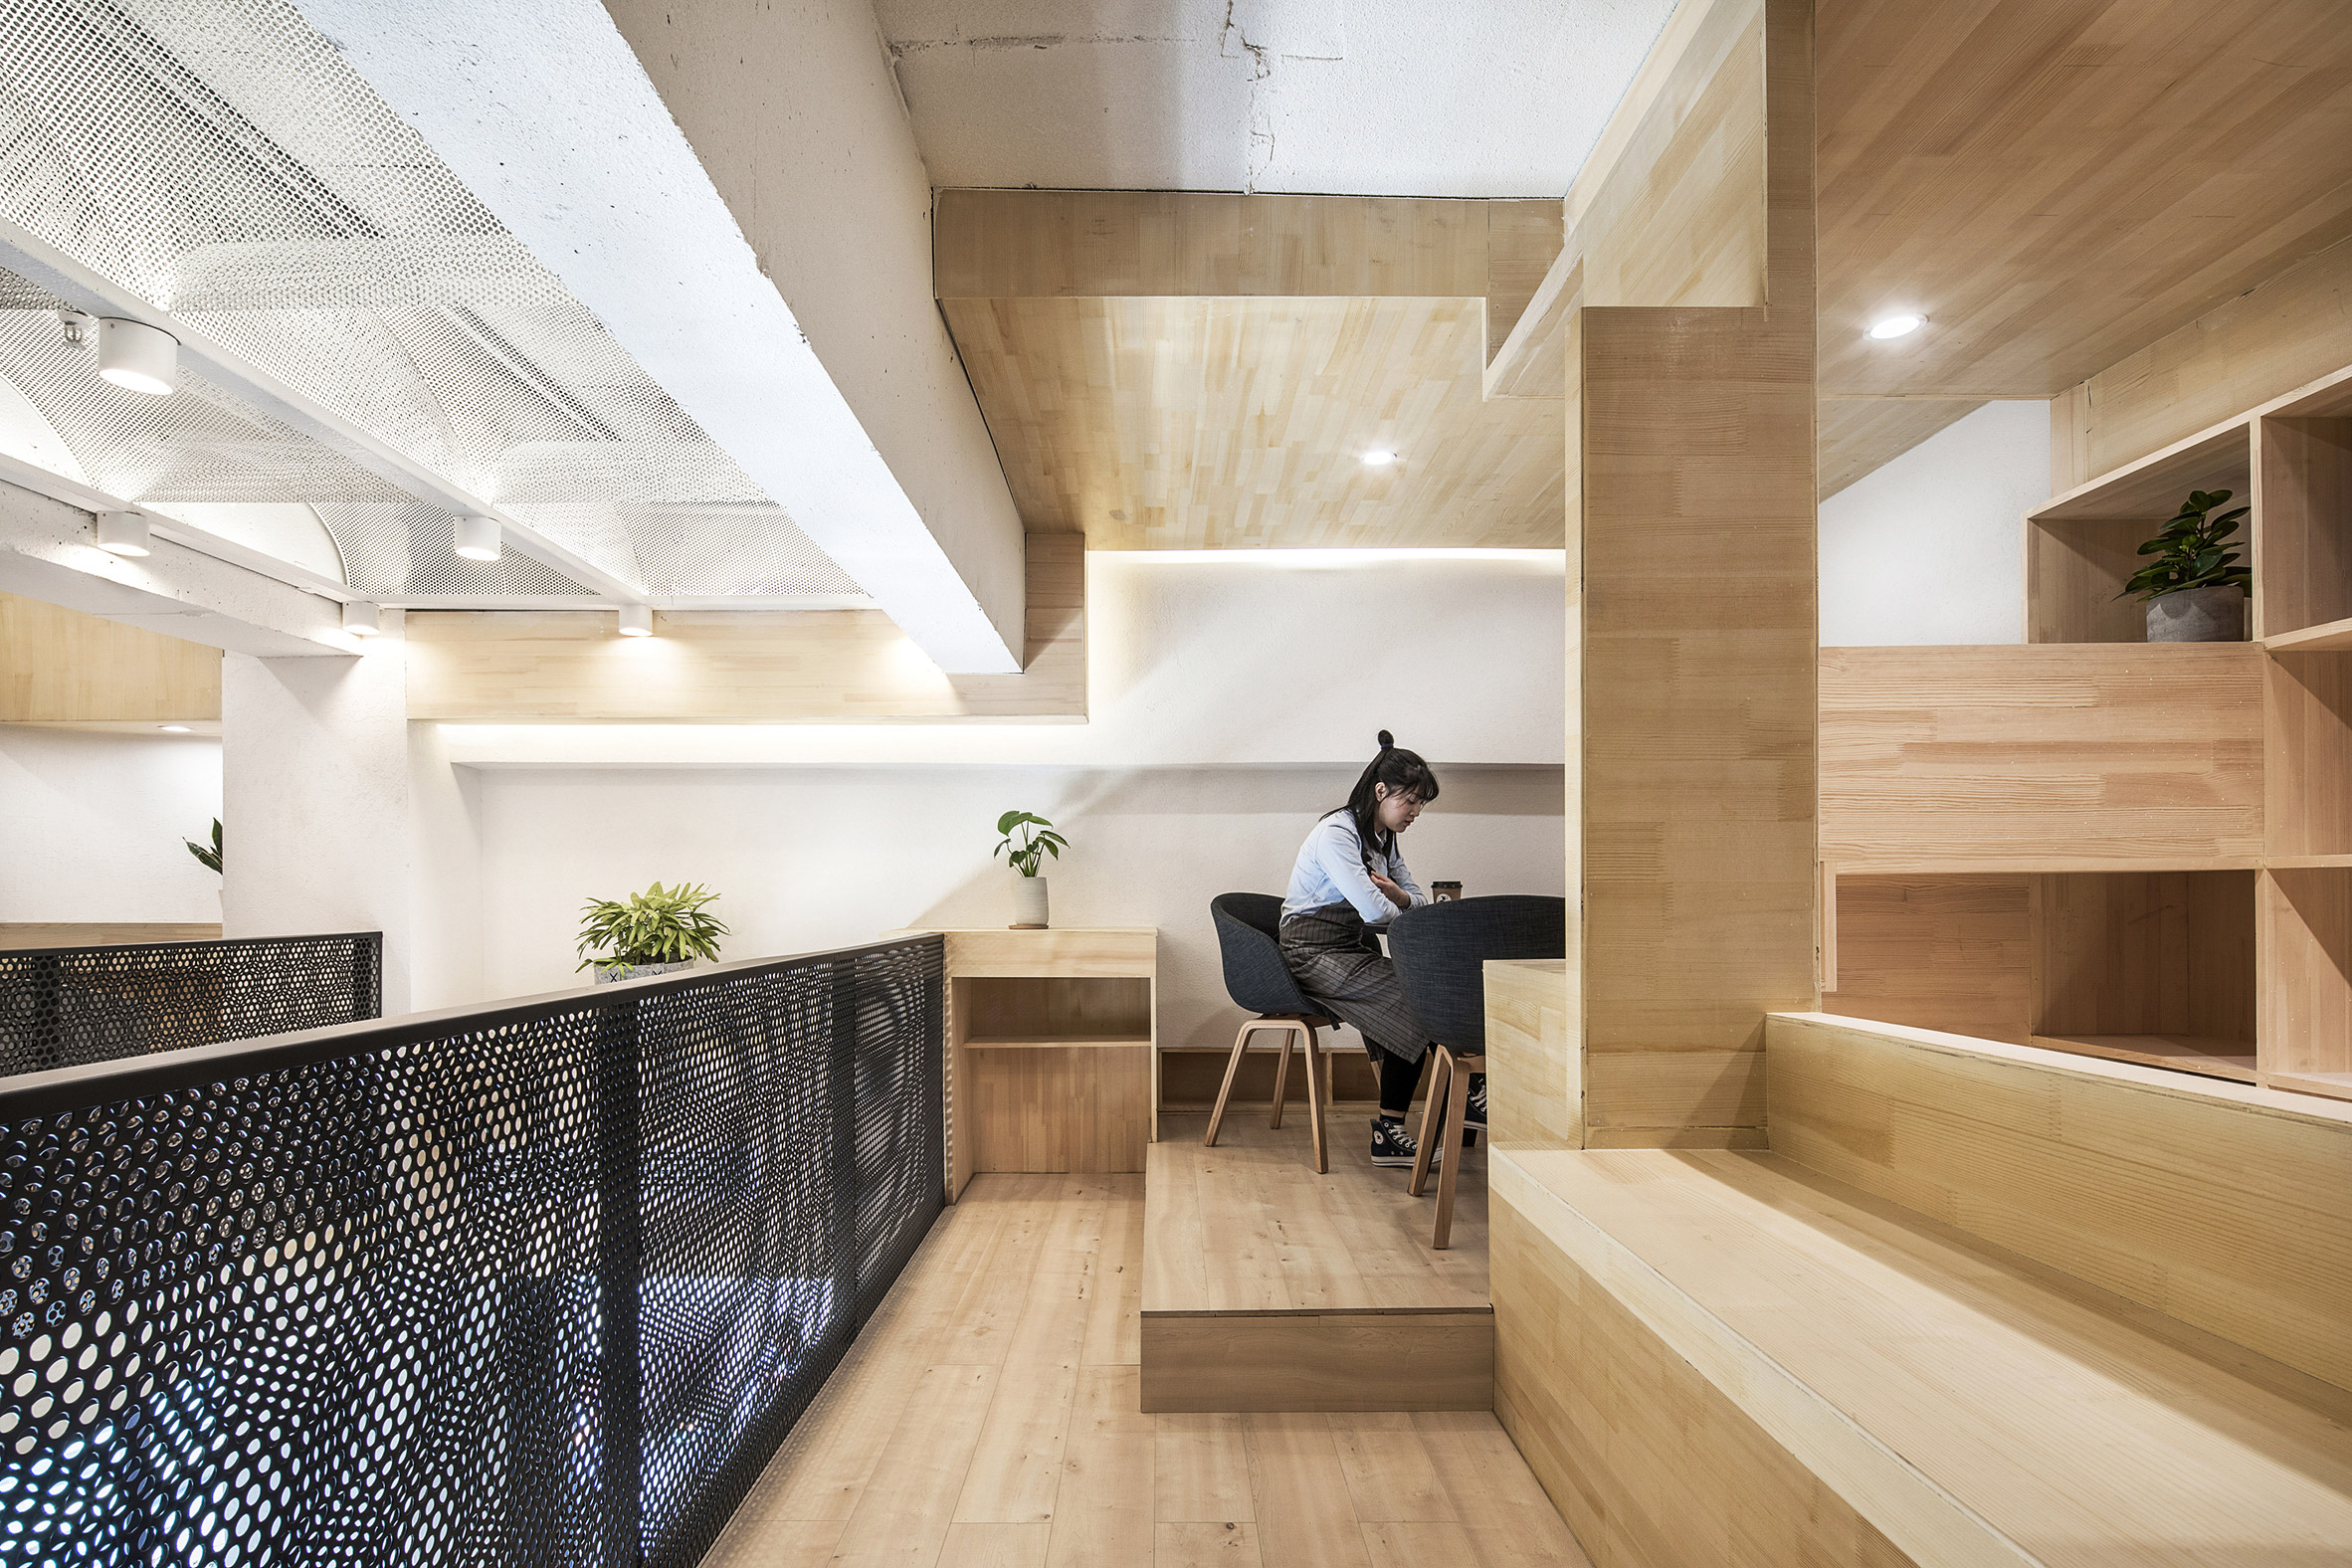 HAD Architects and EPOS design cafe Daodaocoffee